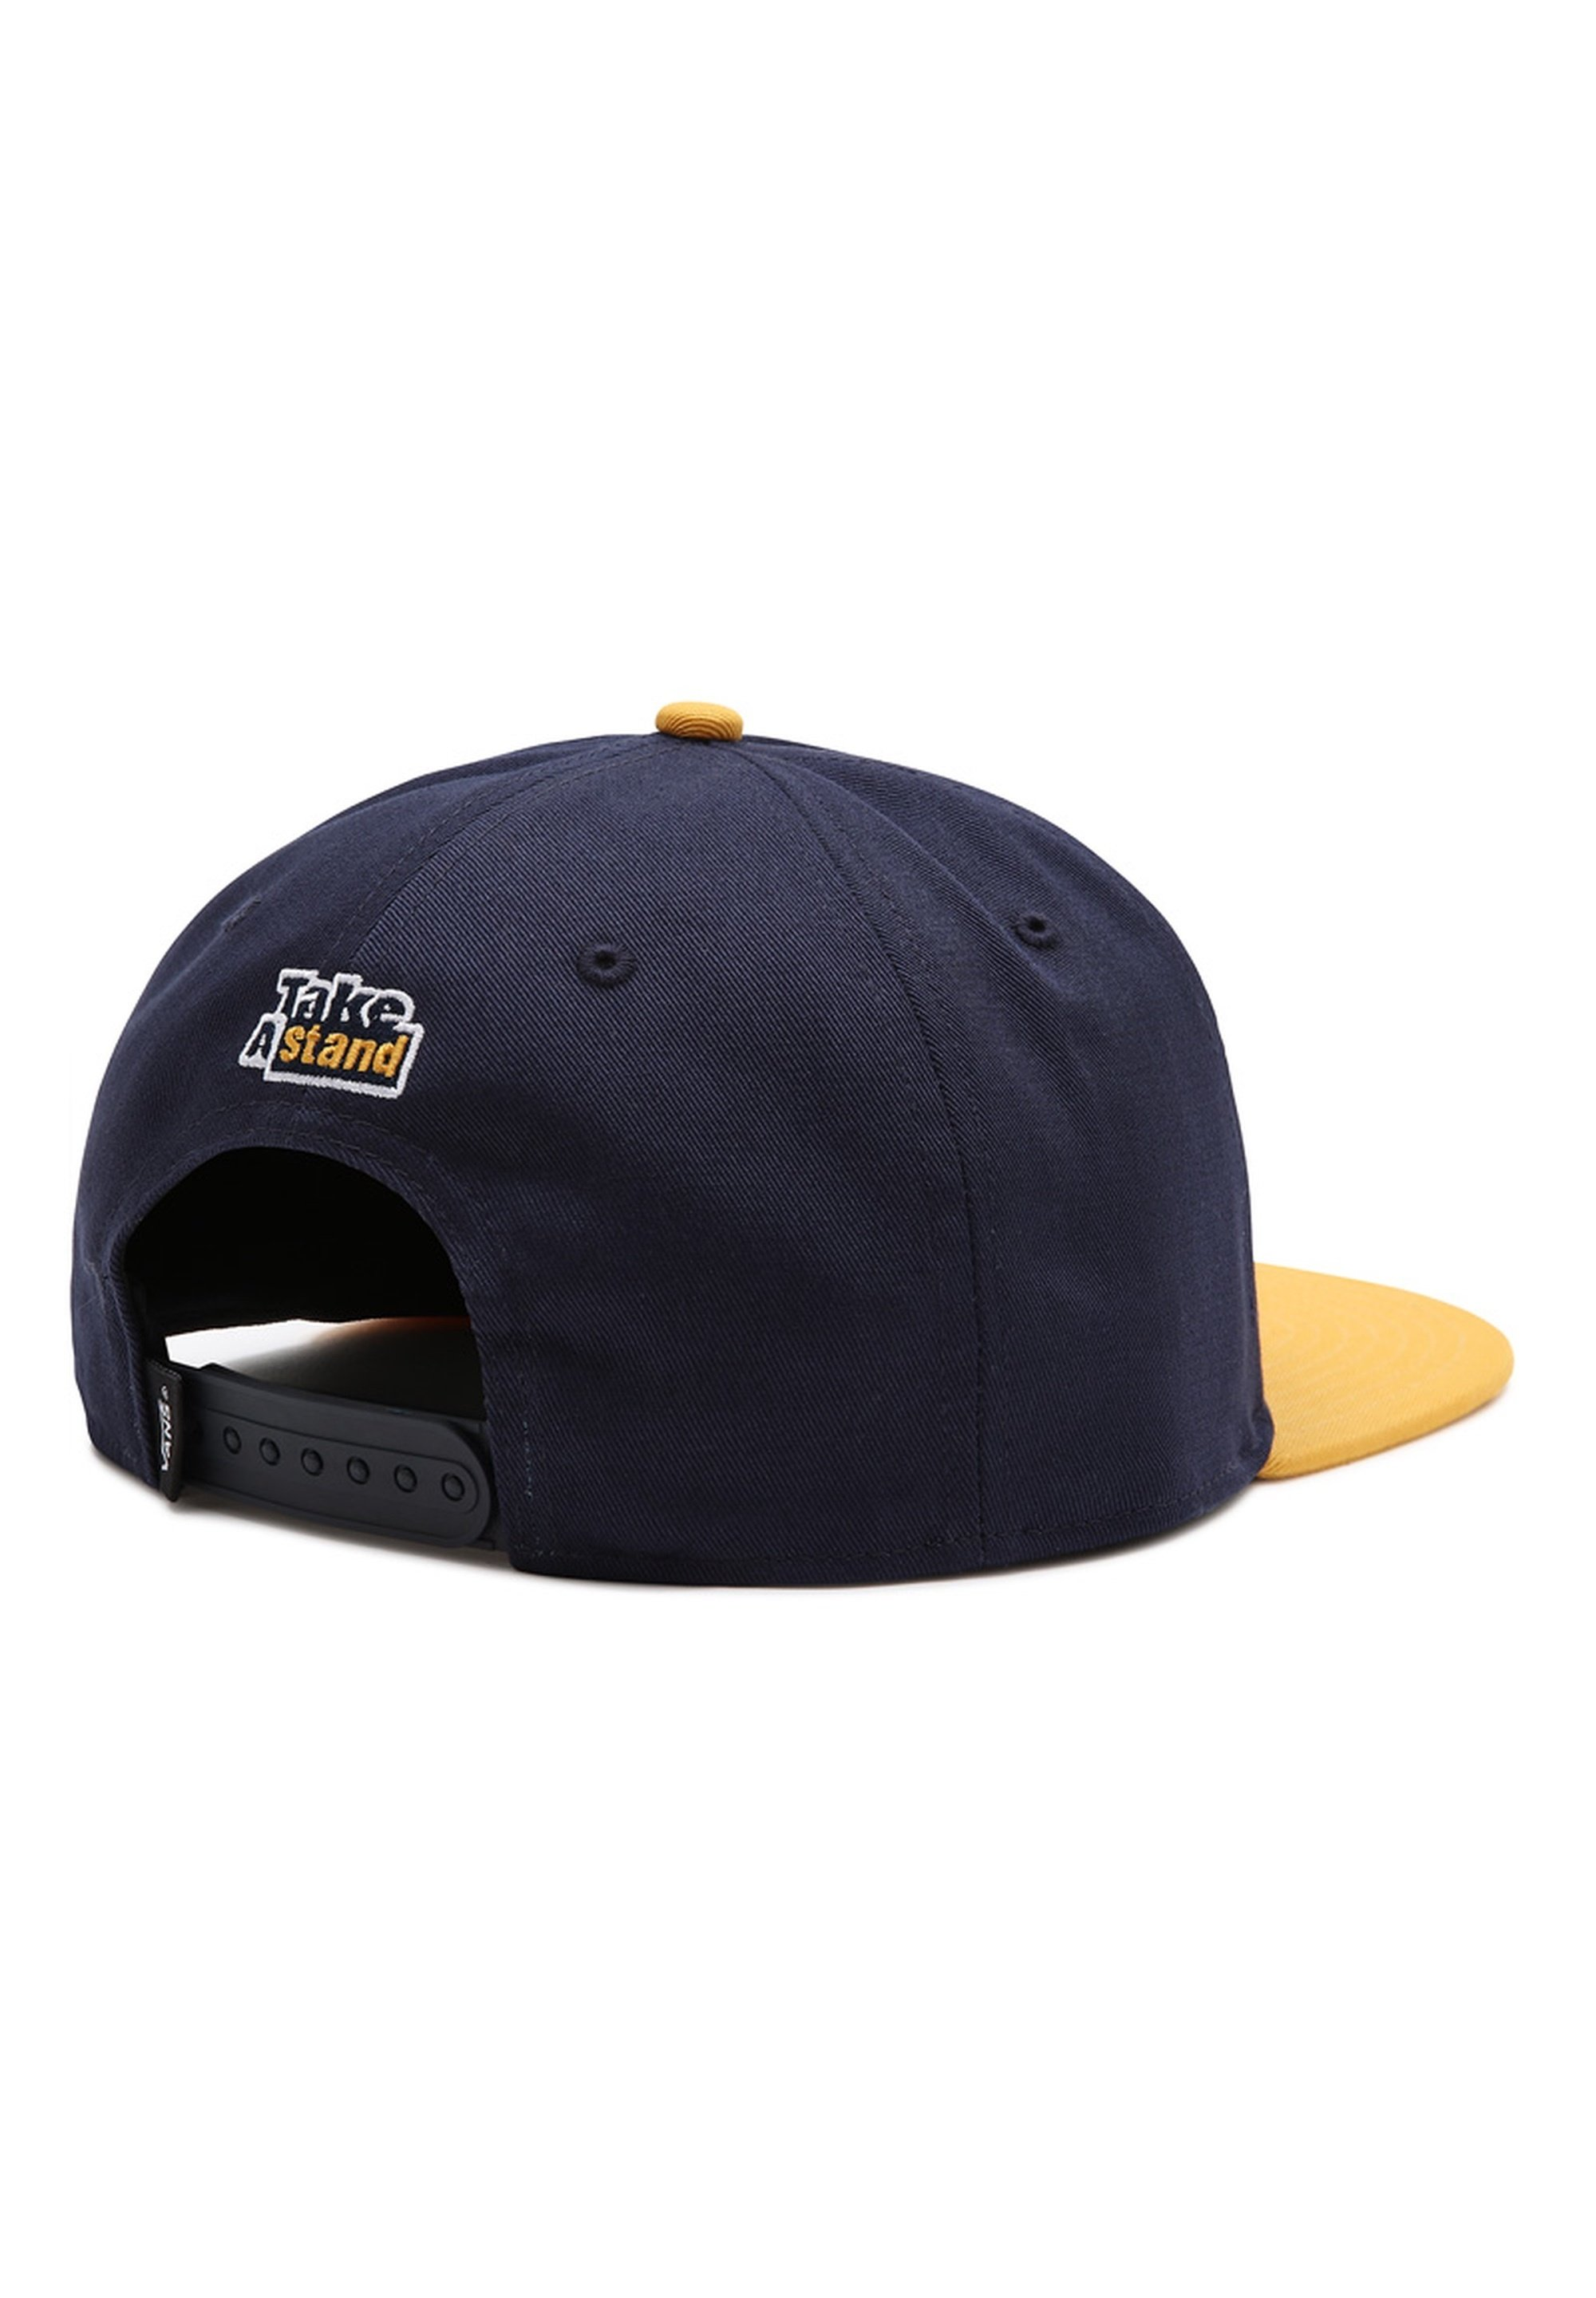 Homme MN TAKE A STAND SNAPBACK - Casquette